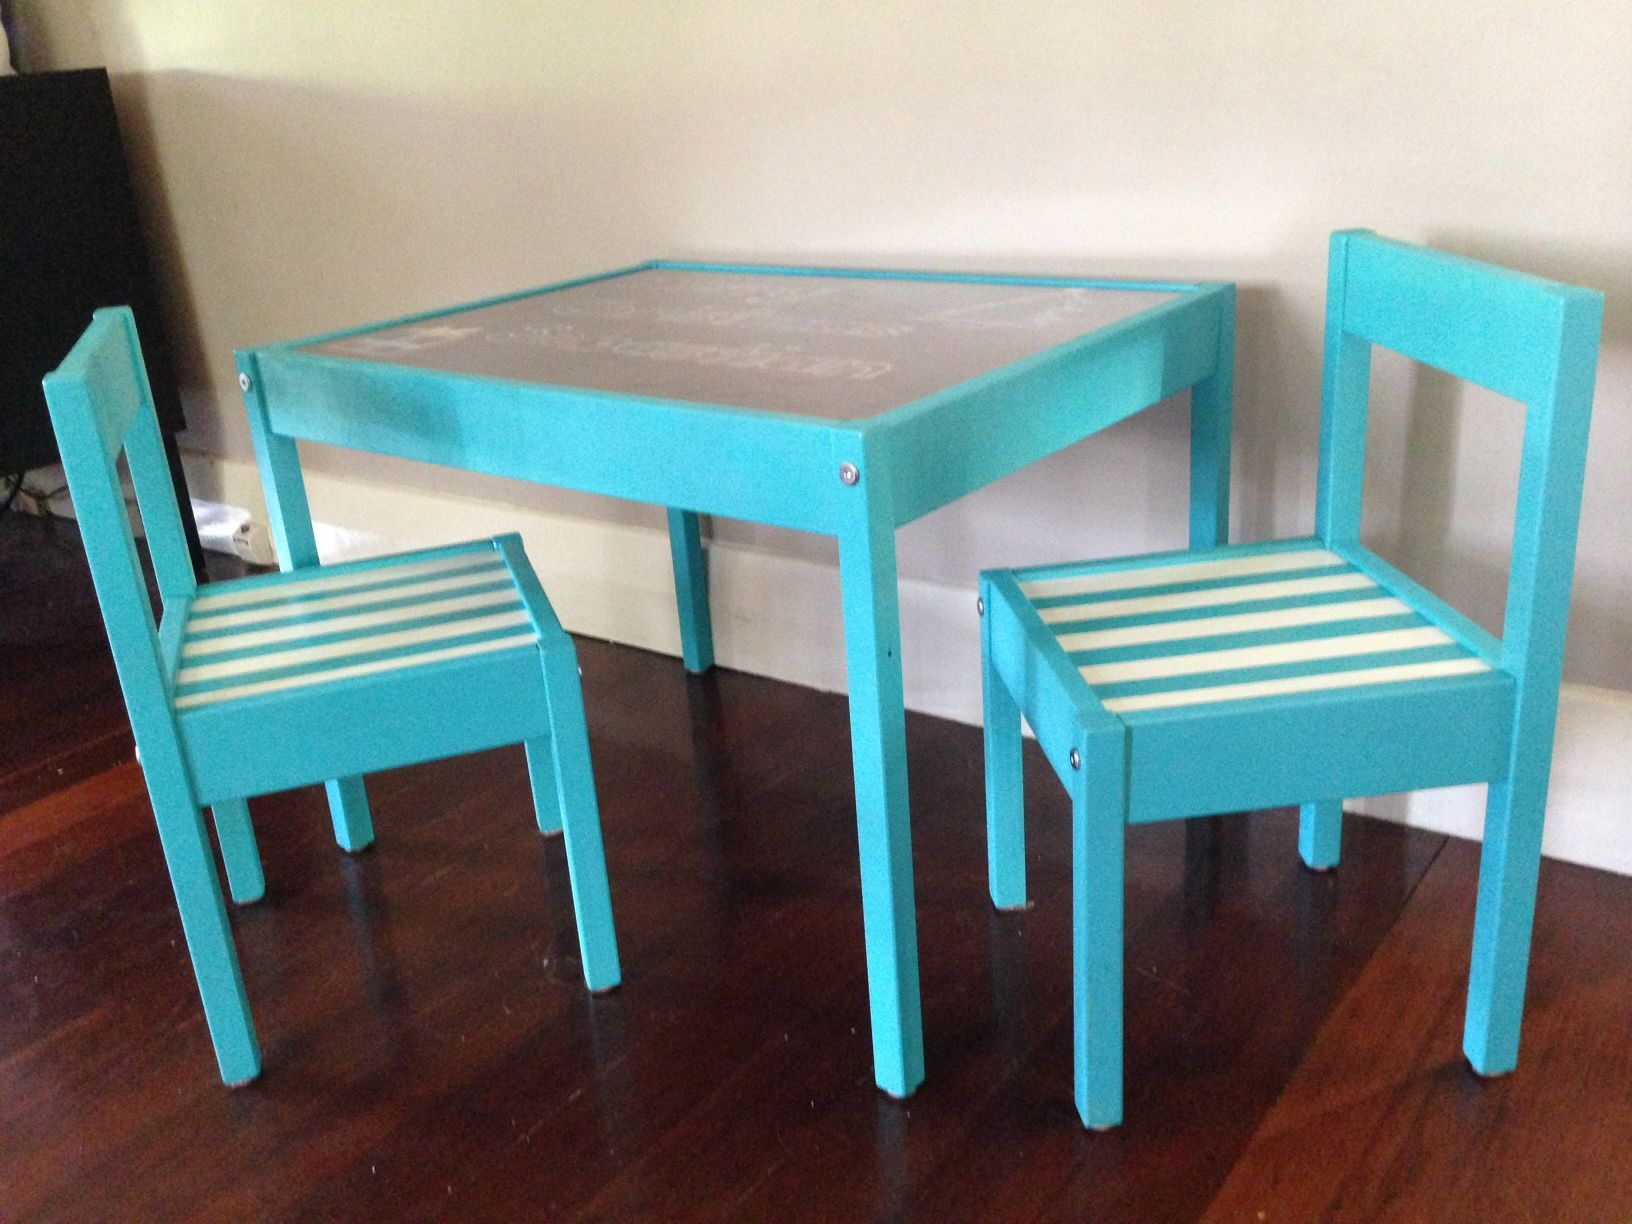 Ikea Latt Kids table hack All parts spray painted before assembly. Stirpes  done using painters